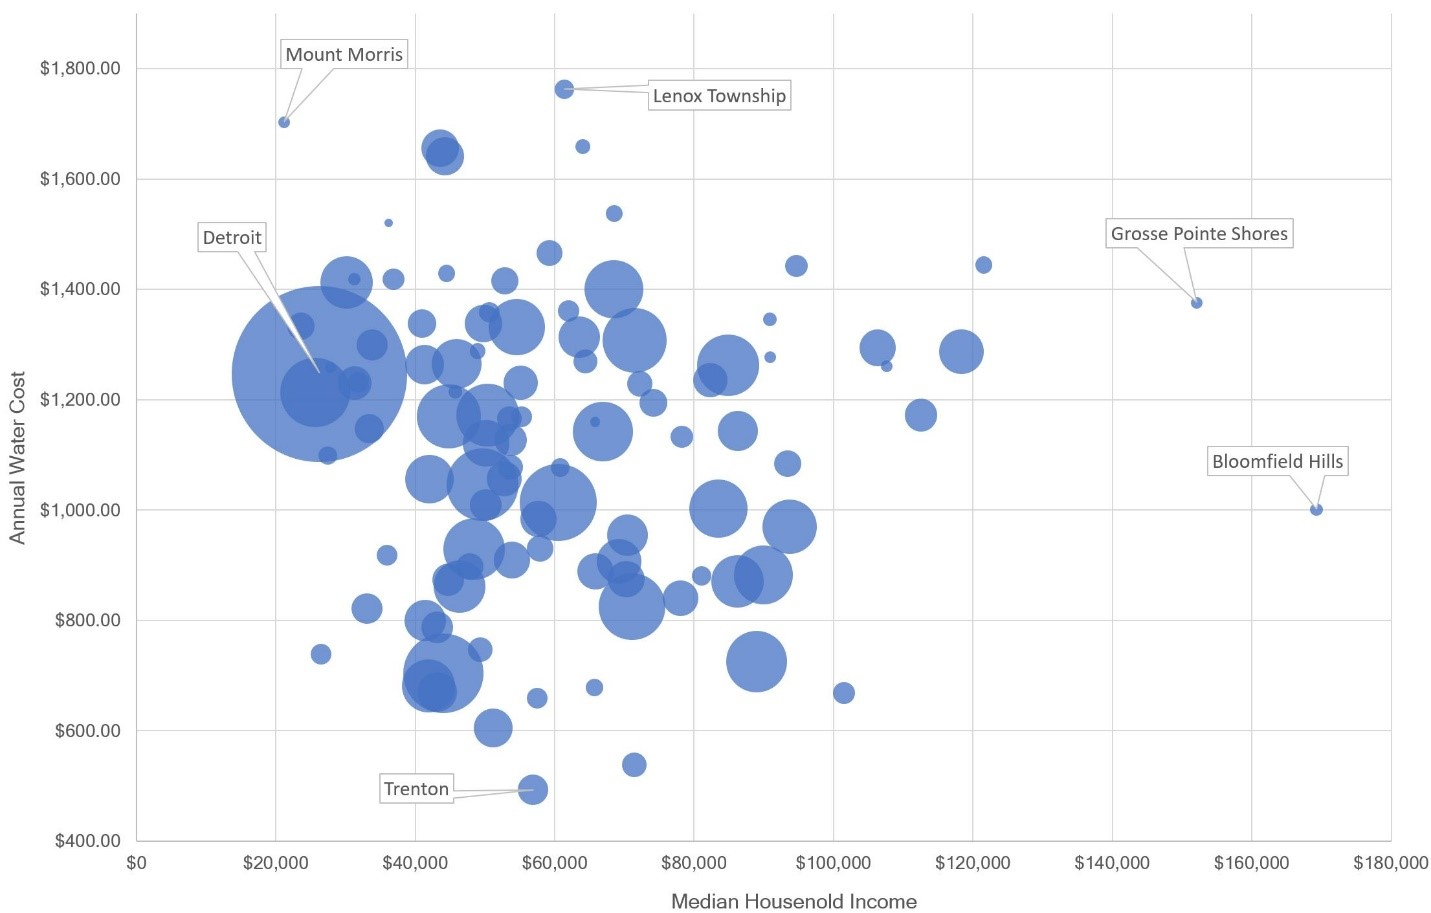 Figure 15: Scatterplot of Annual Water Costs, Median Household Income,  and Number of Households